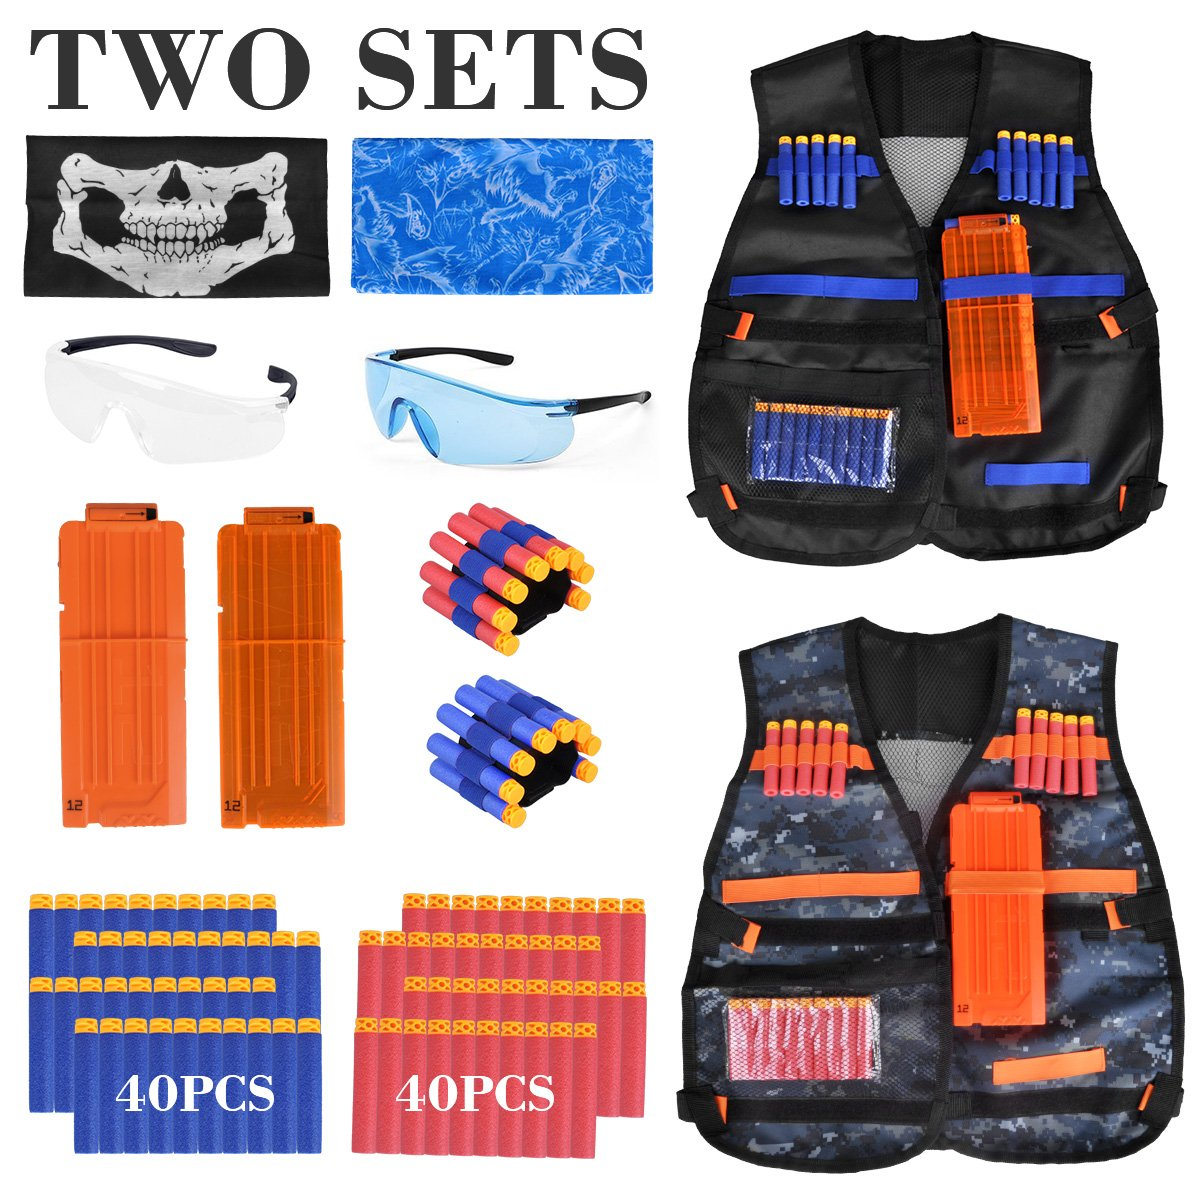 2 Pack Kids Tactical Vest Kit Compatible with Nerf Guns N-Strike Elite Series, with 80 Pcs Refill Darts, 2 Reload Clips, 2 Face Tube Masks, 2 Hand Wrist Bands and 2 Protective Glasses